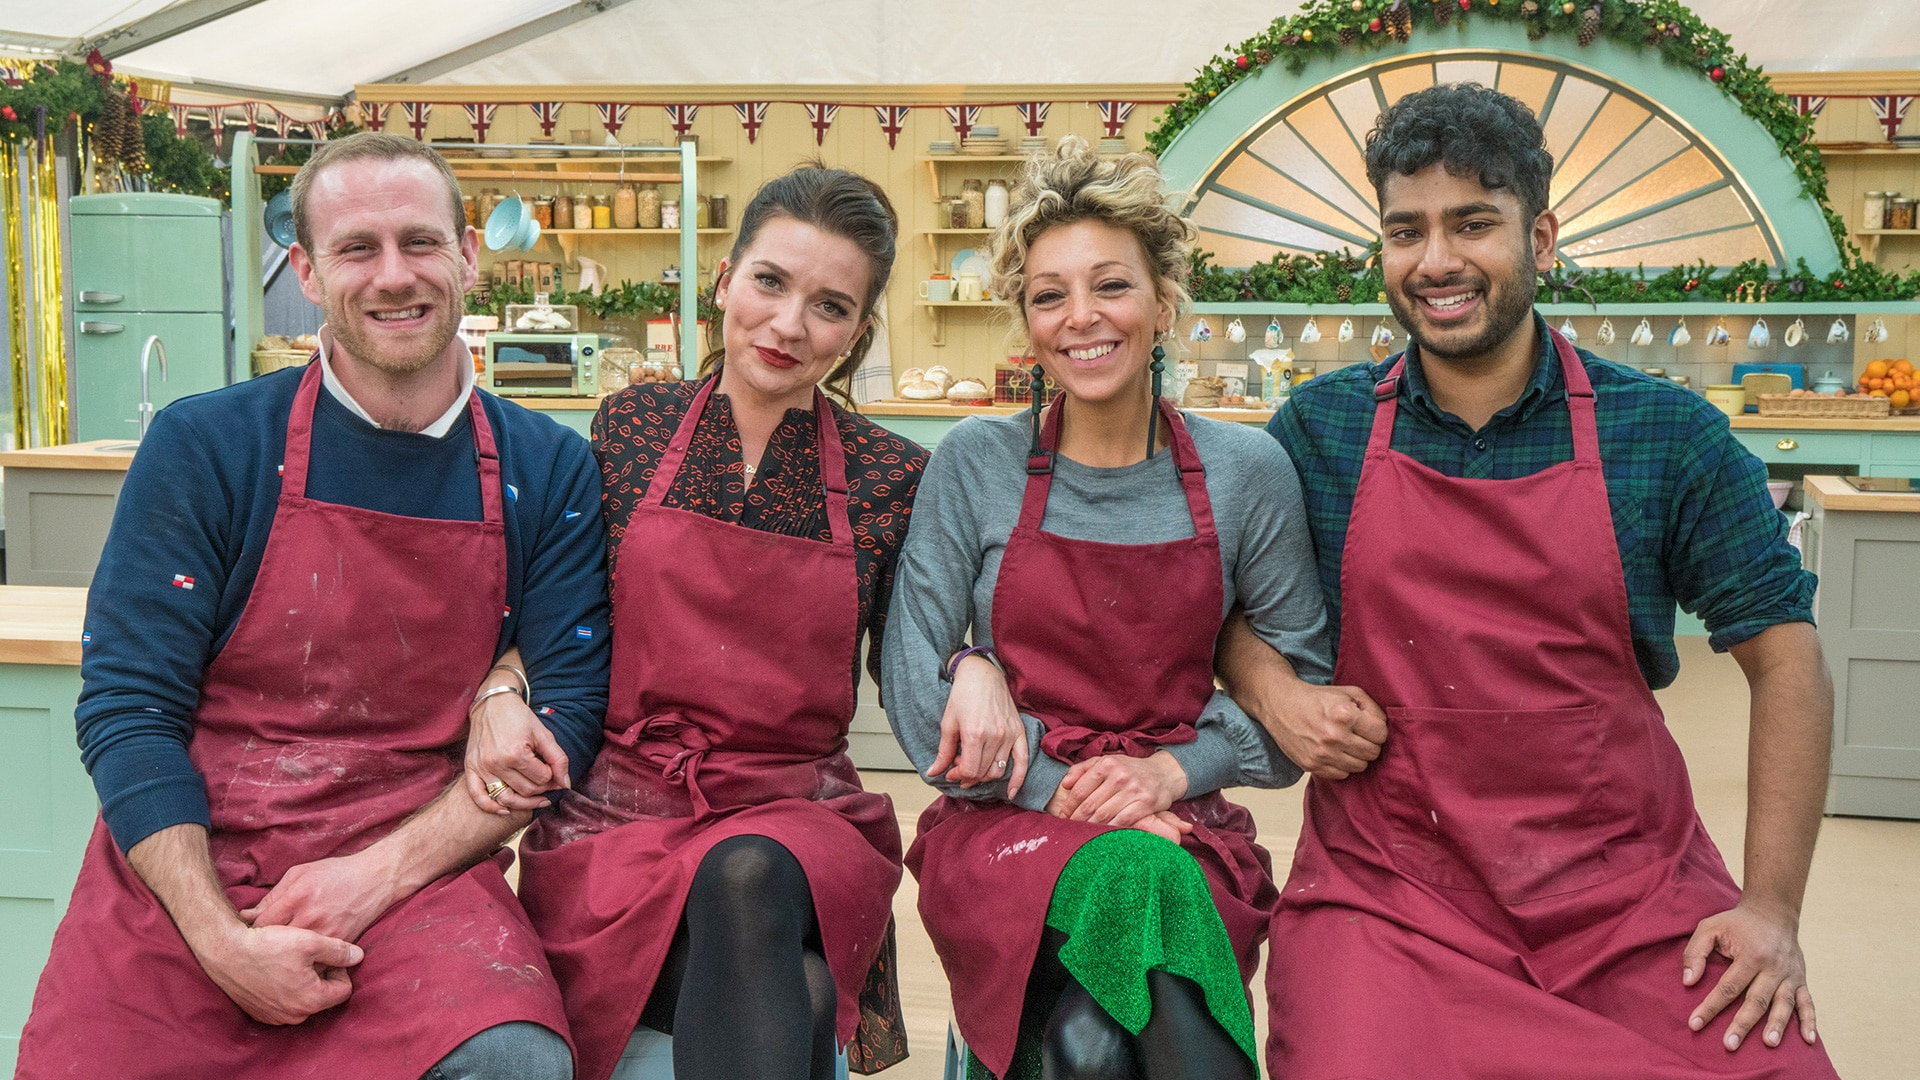 The Great British Bake Off Christmas Special 2020 The Great British Bake Off: Festive Specials   All 4